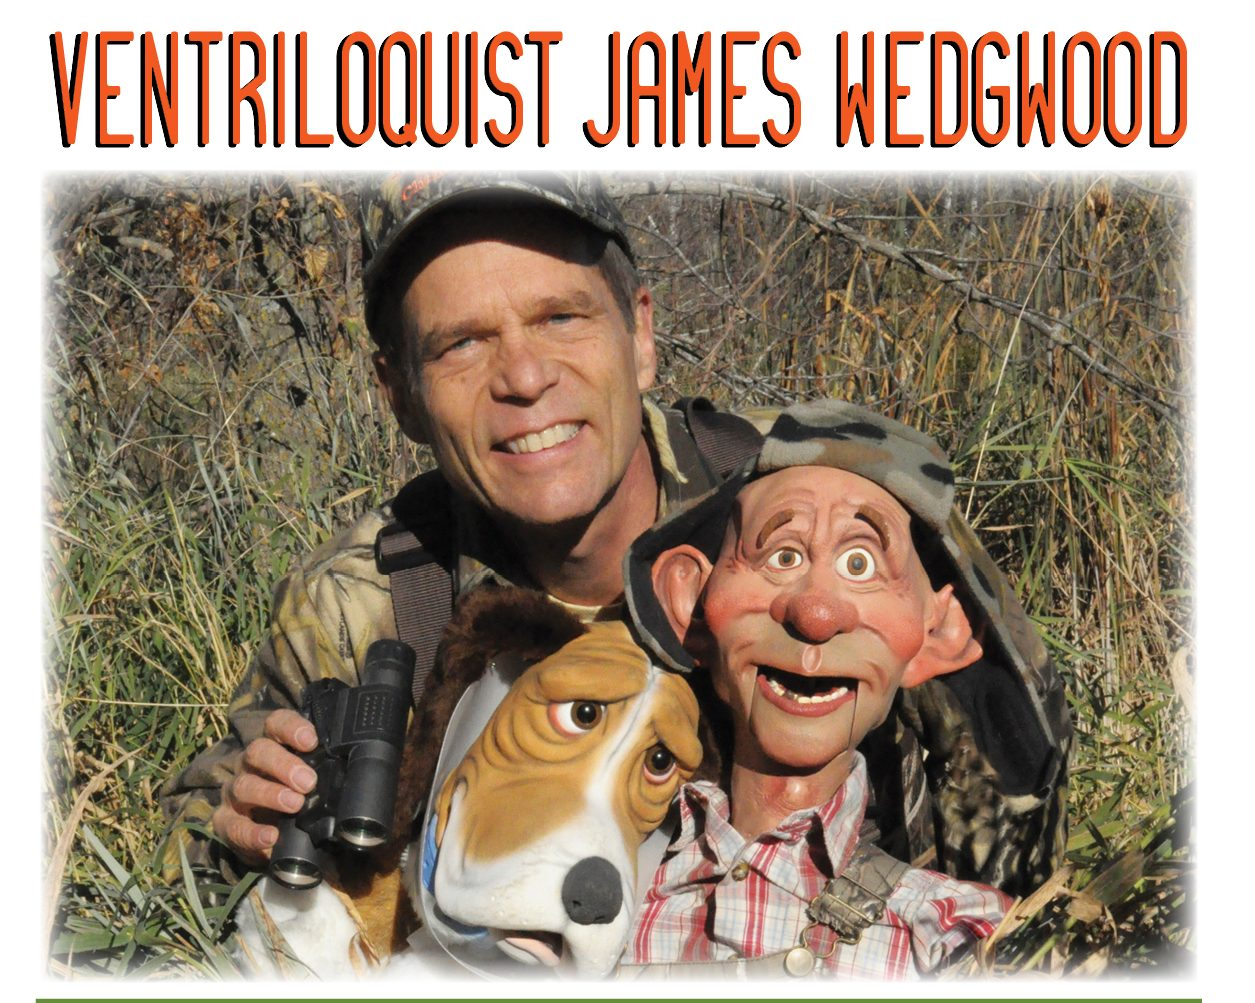 Promo picture of ventriloquist James Wedgwood and his puppets.